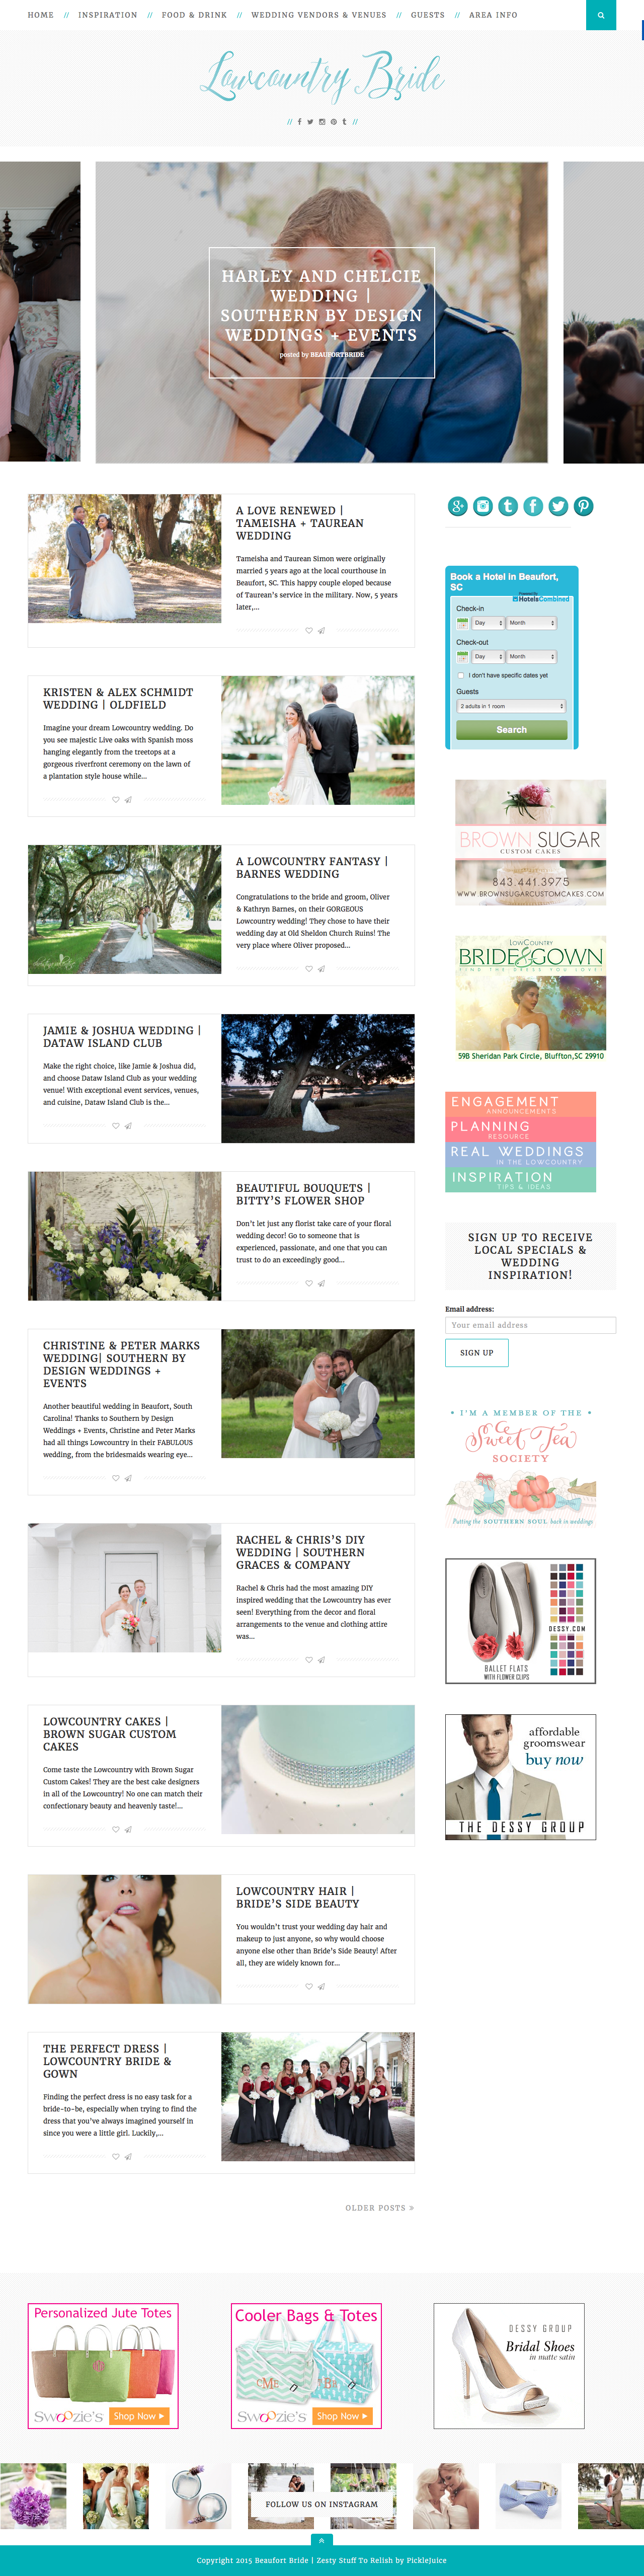 Lowcountry Bride Web Design | PickleJuice Productions